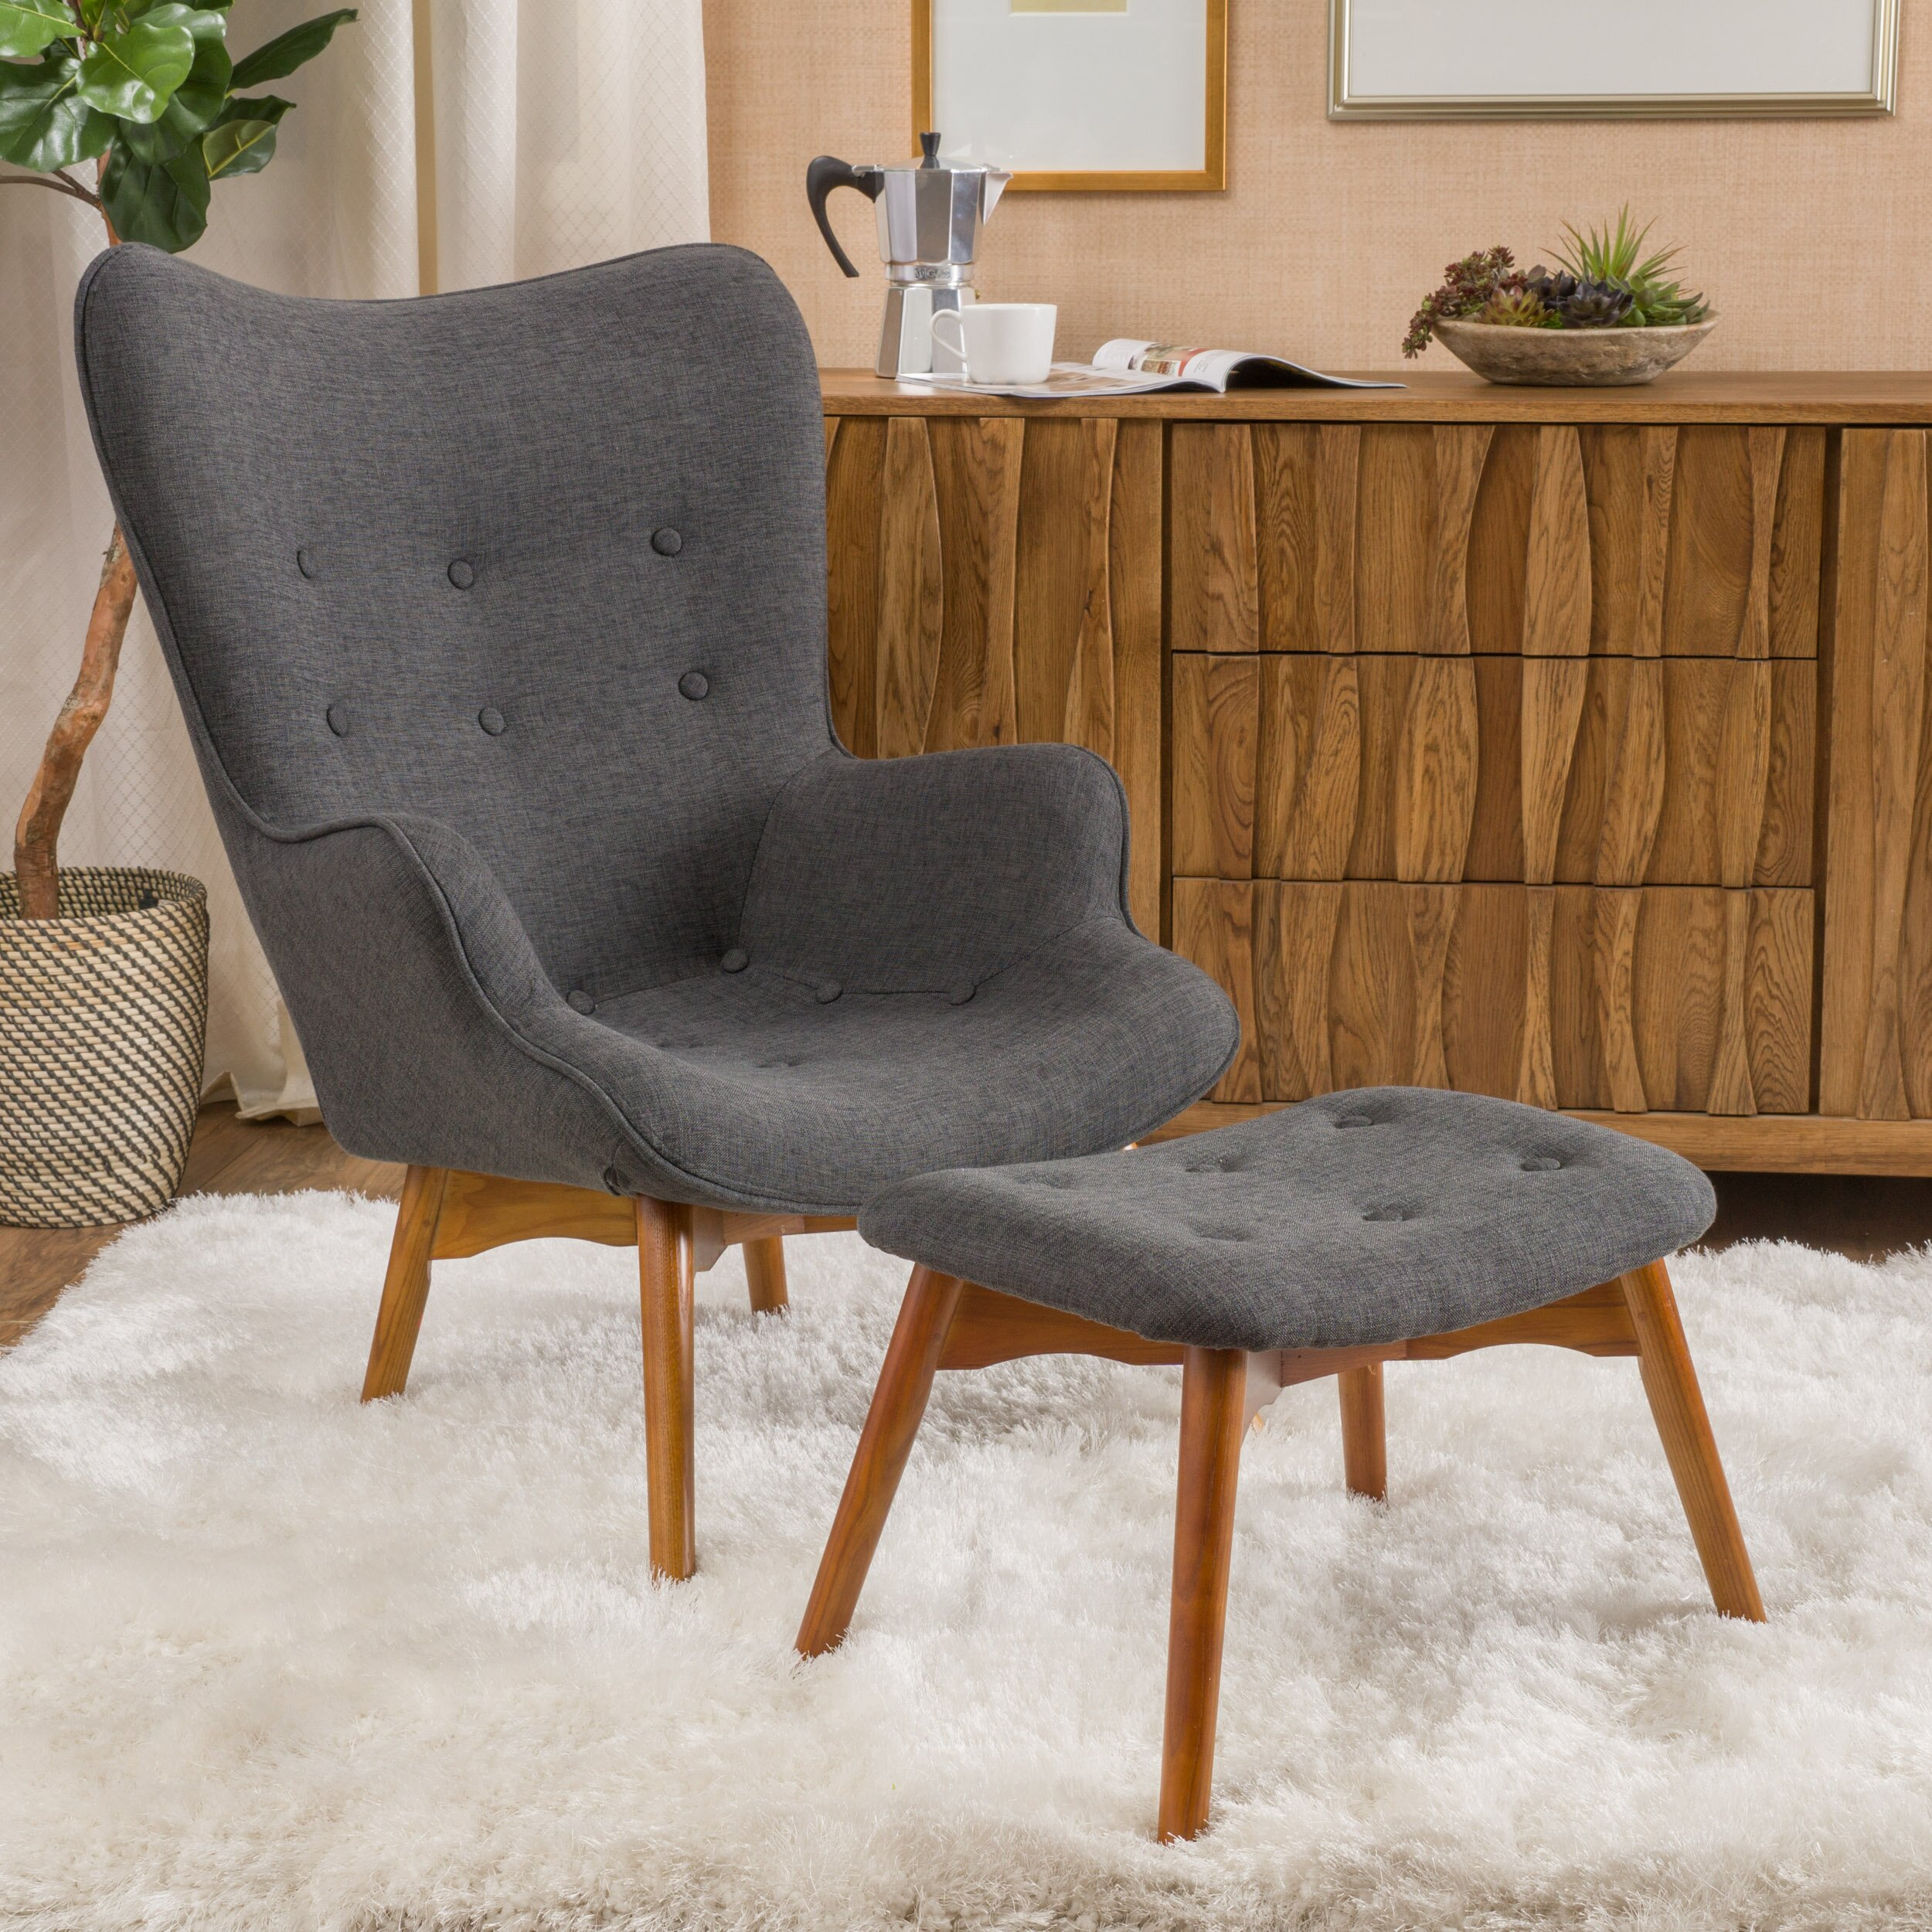 ^ Mid-entury Modern Inspired Finds from Wayfair Dans le Lakehouse